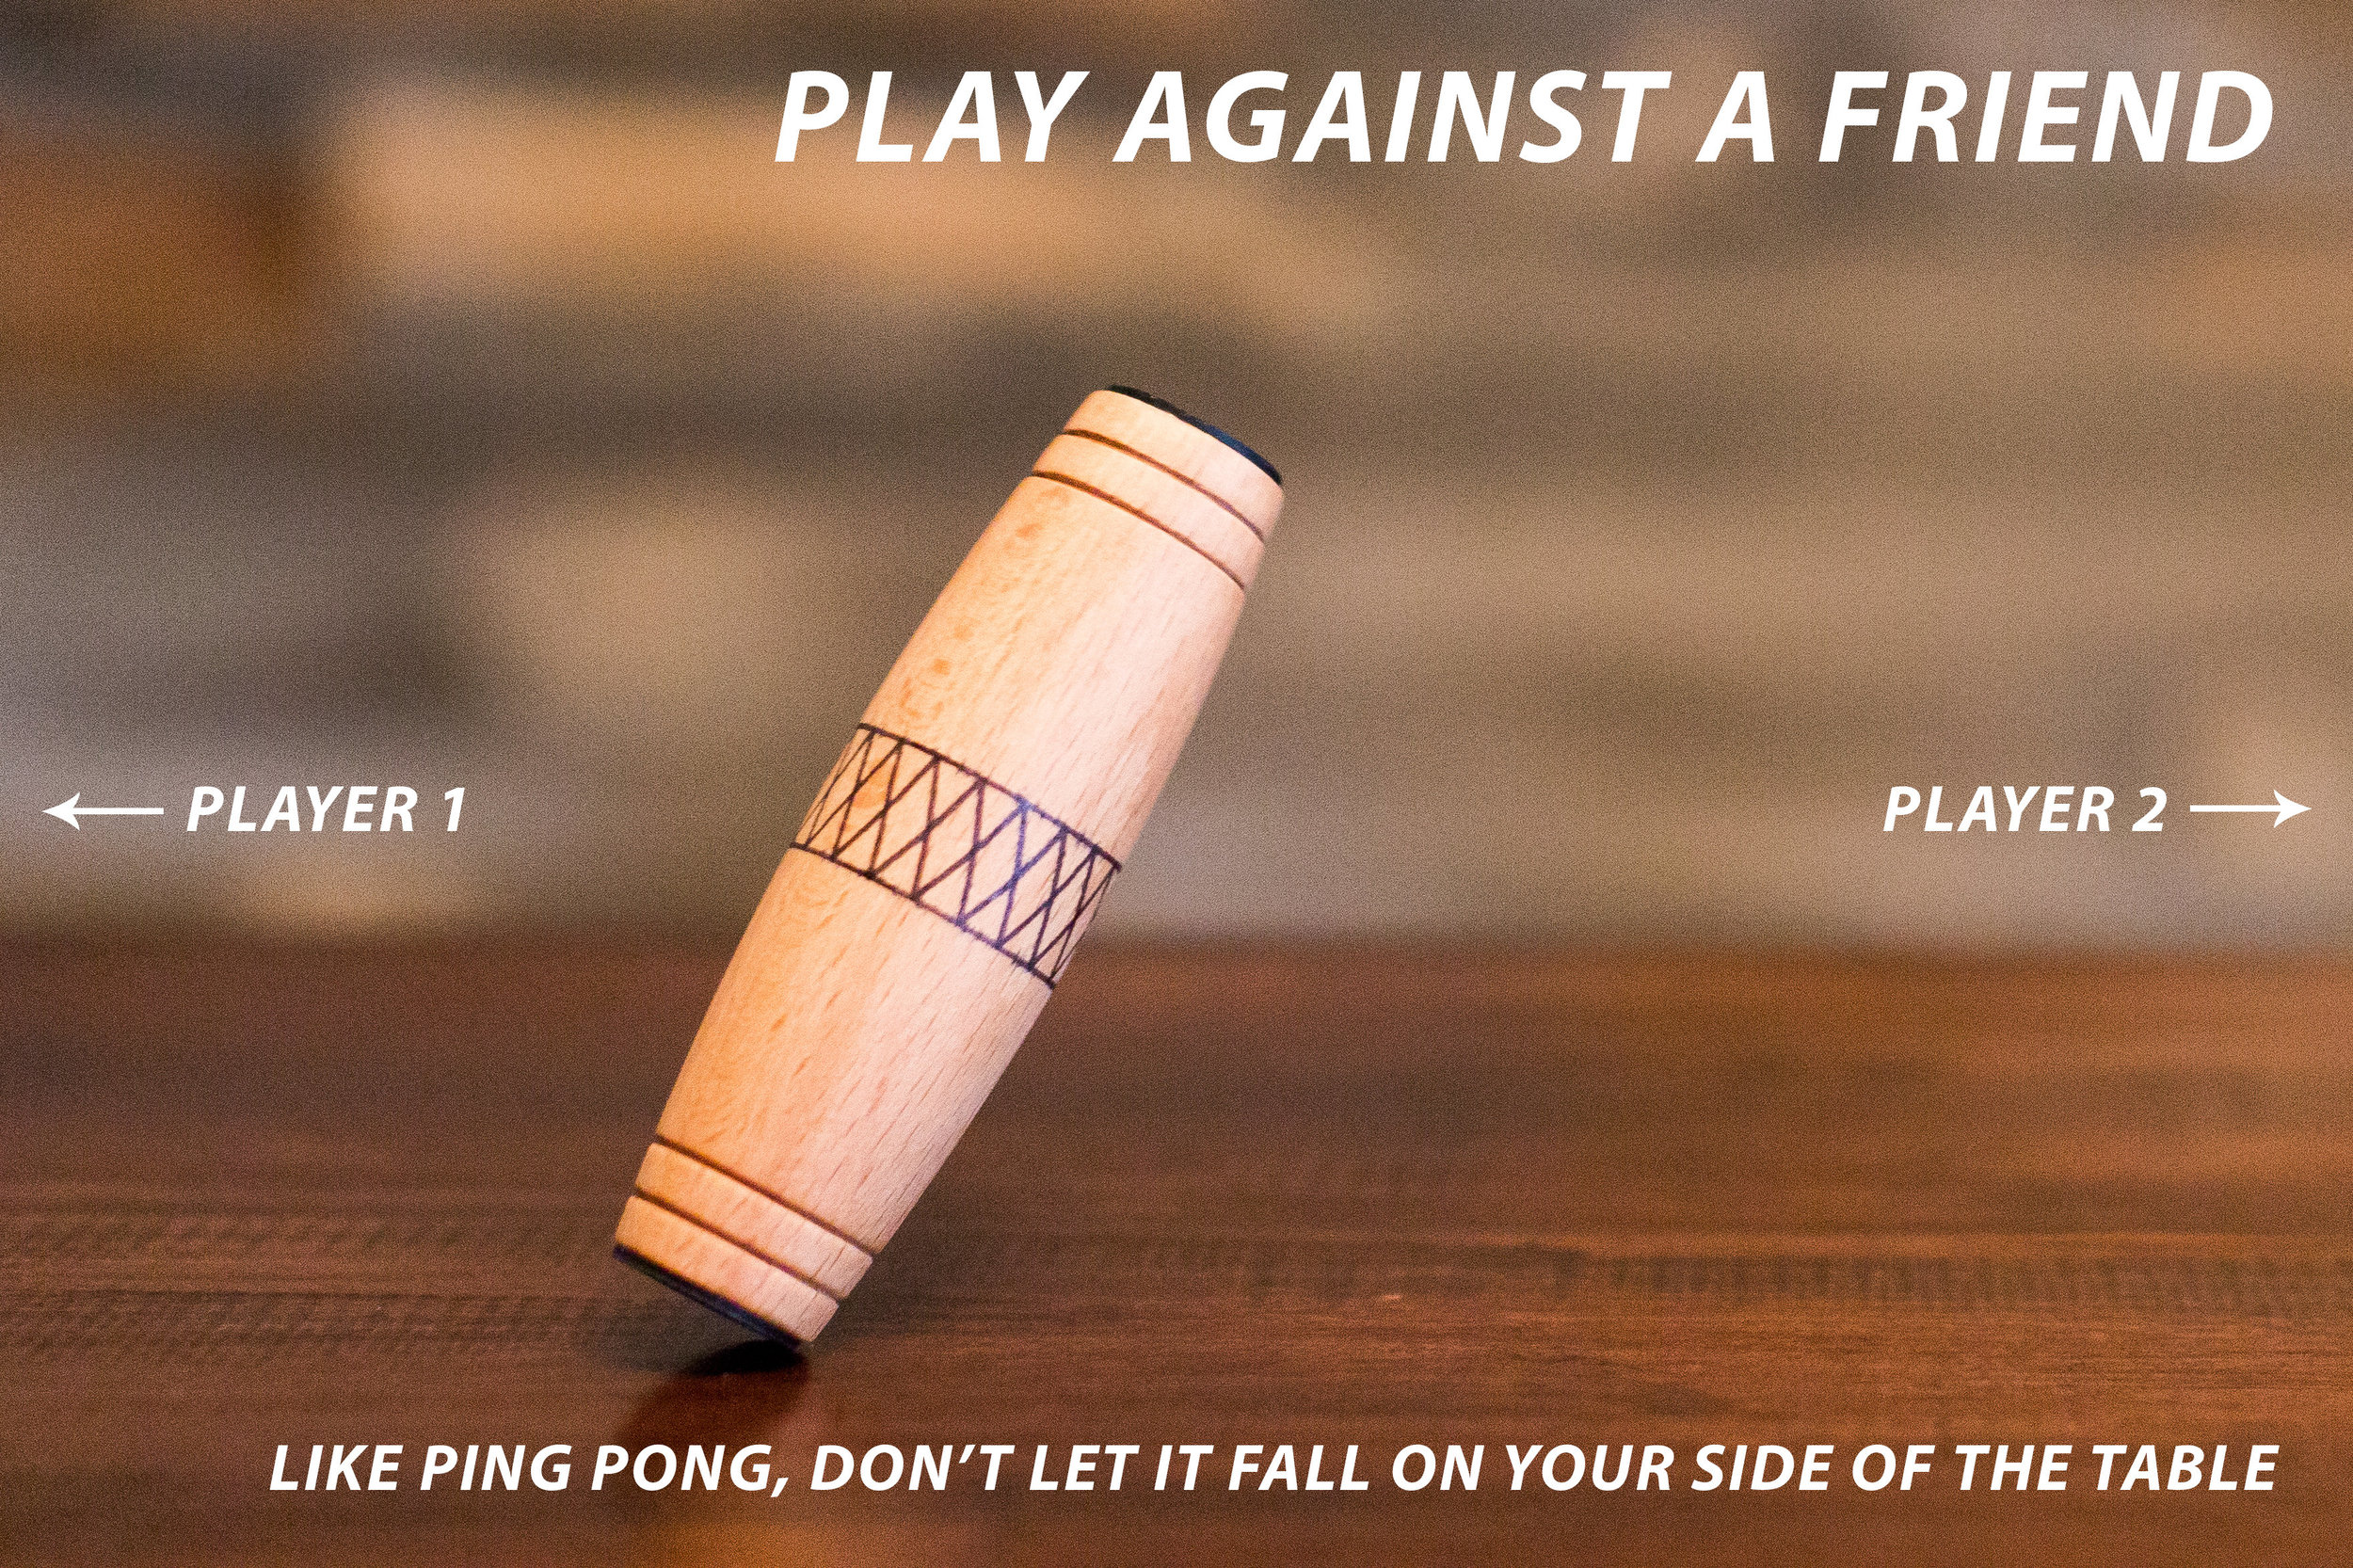 kururin-game-play-ping-pong-against-friend-compete